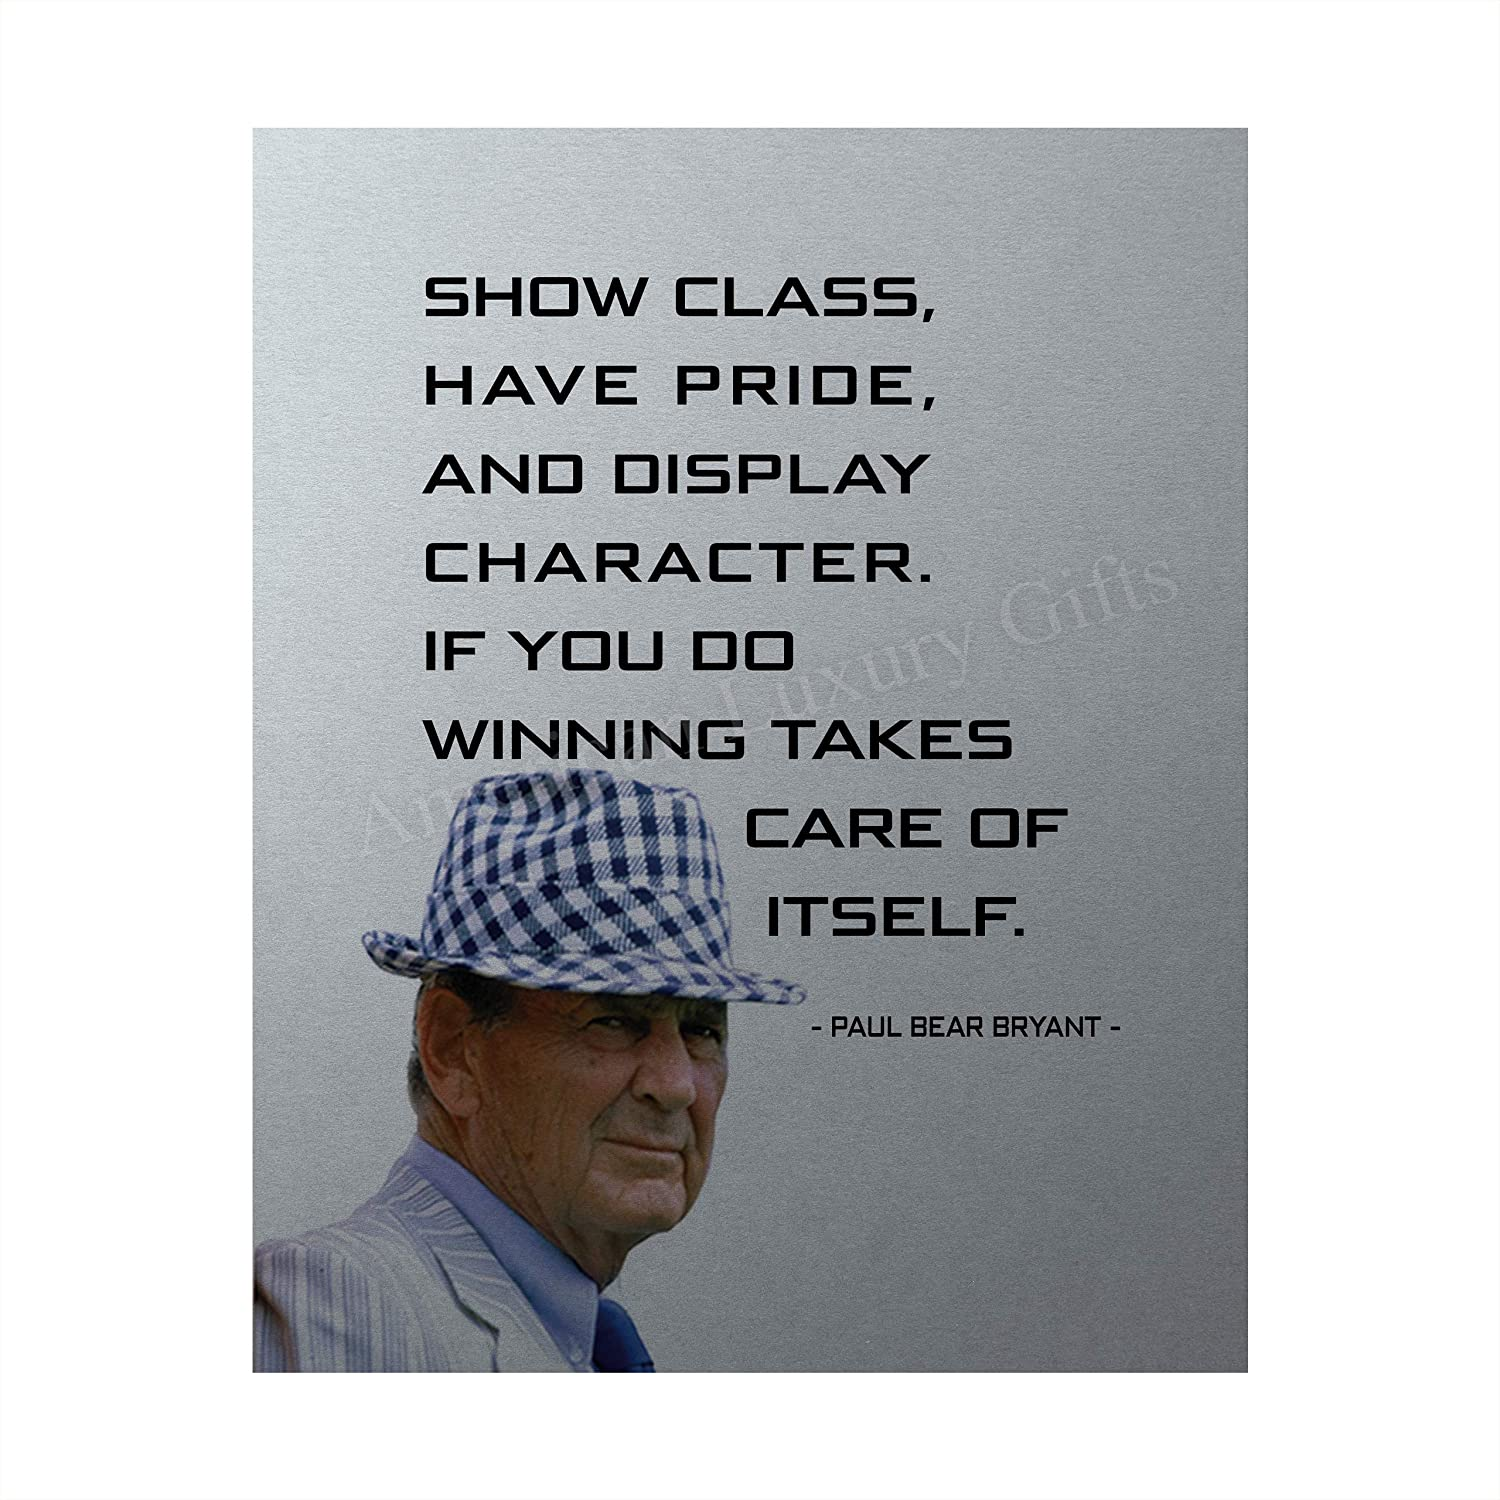 "Paul Bear Bryant Quotes-""Show Class-Winning Takes Care of Itself""-Inspirational Wall Art-8 x 10"" Silhouette Poster Print-Ready to Frame. Home-Office-Studio-School-Gym Decor. Great Coaching Gift!"